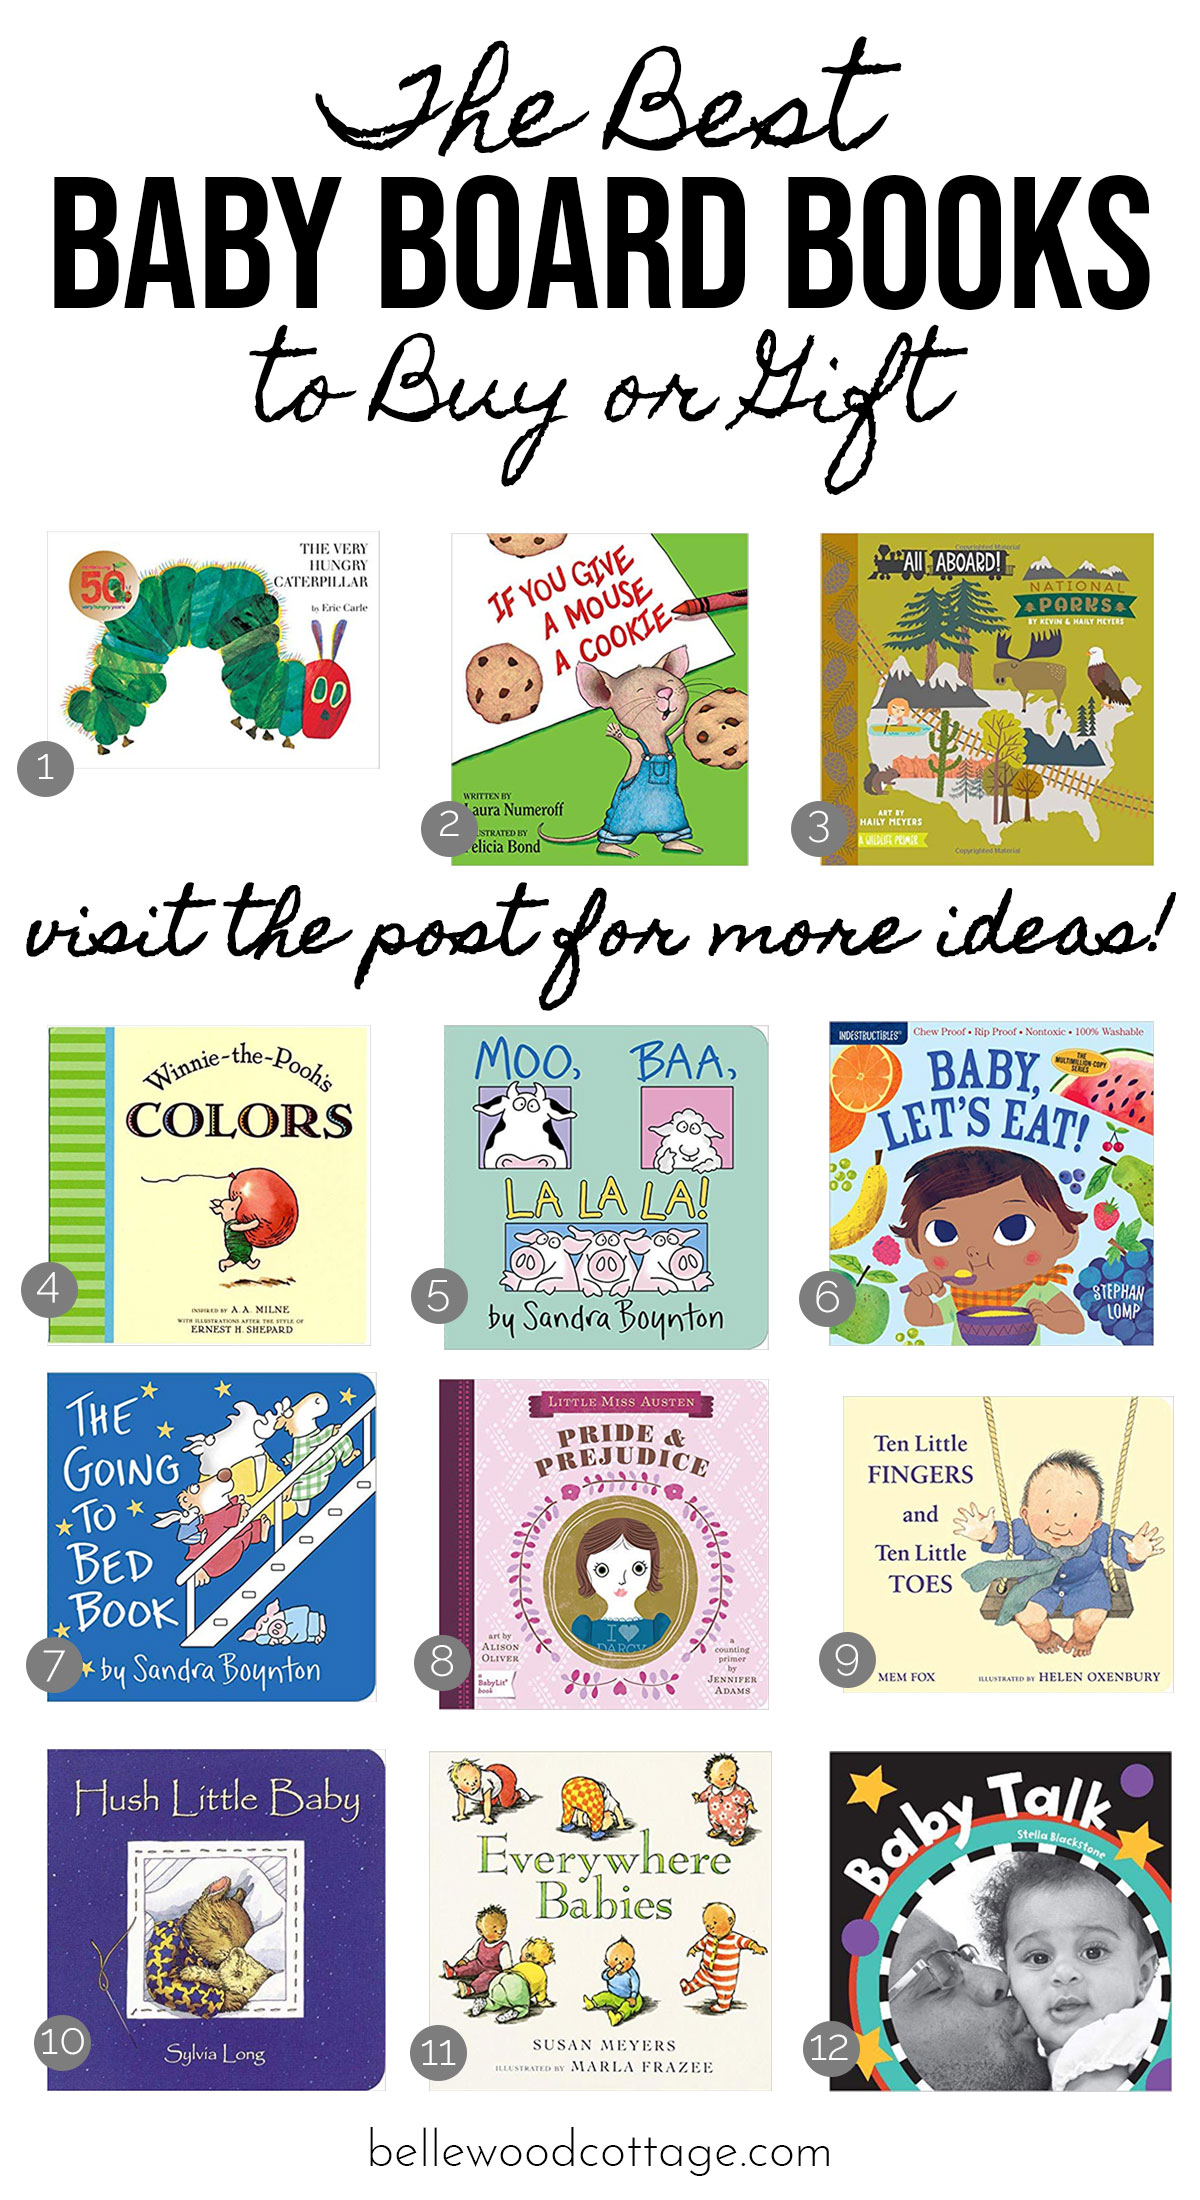 A collage graphic of the Best Baby Board Books.